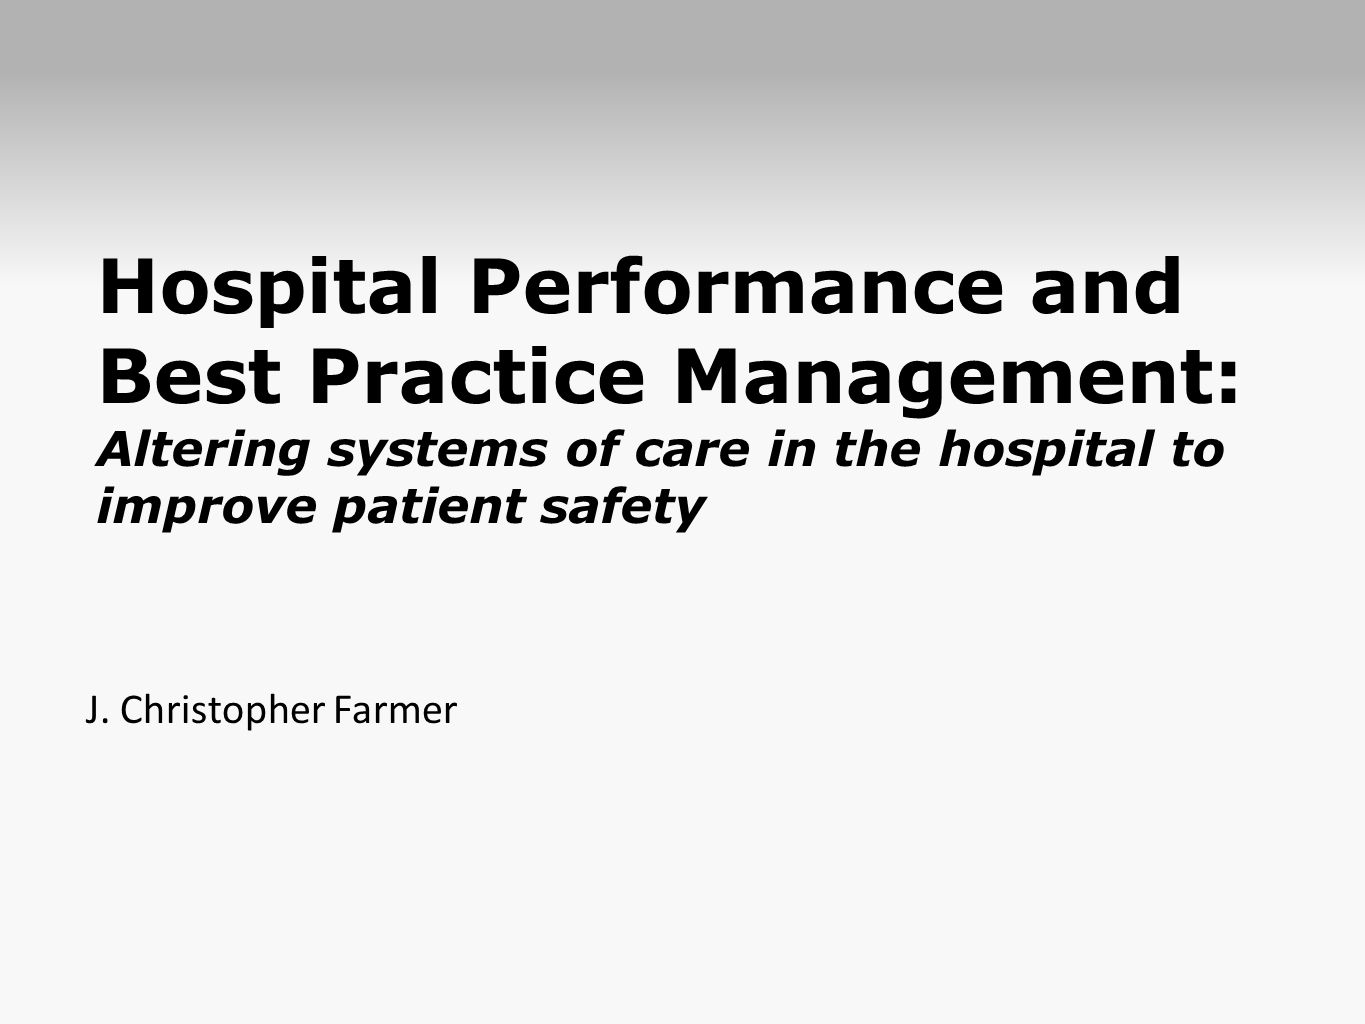 Hospital Performance and Best Practice Management: Altering systems of care in the hospital to improve patient safety